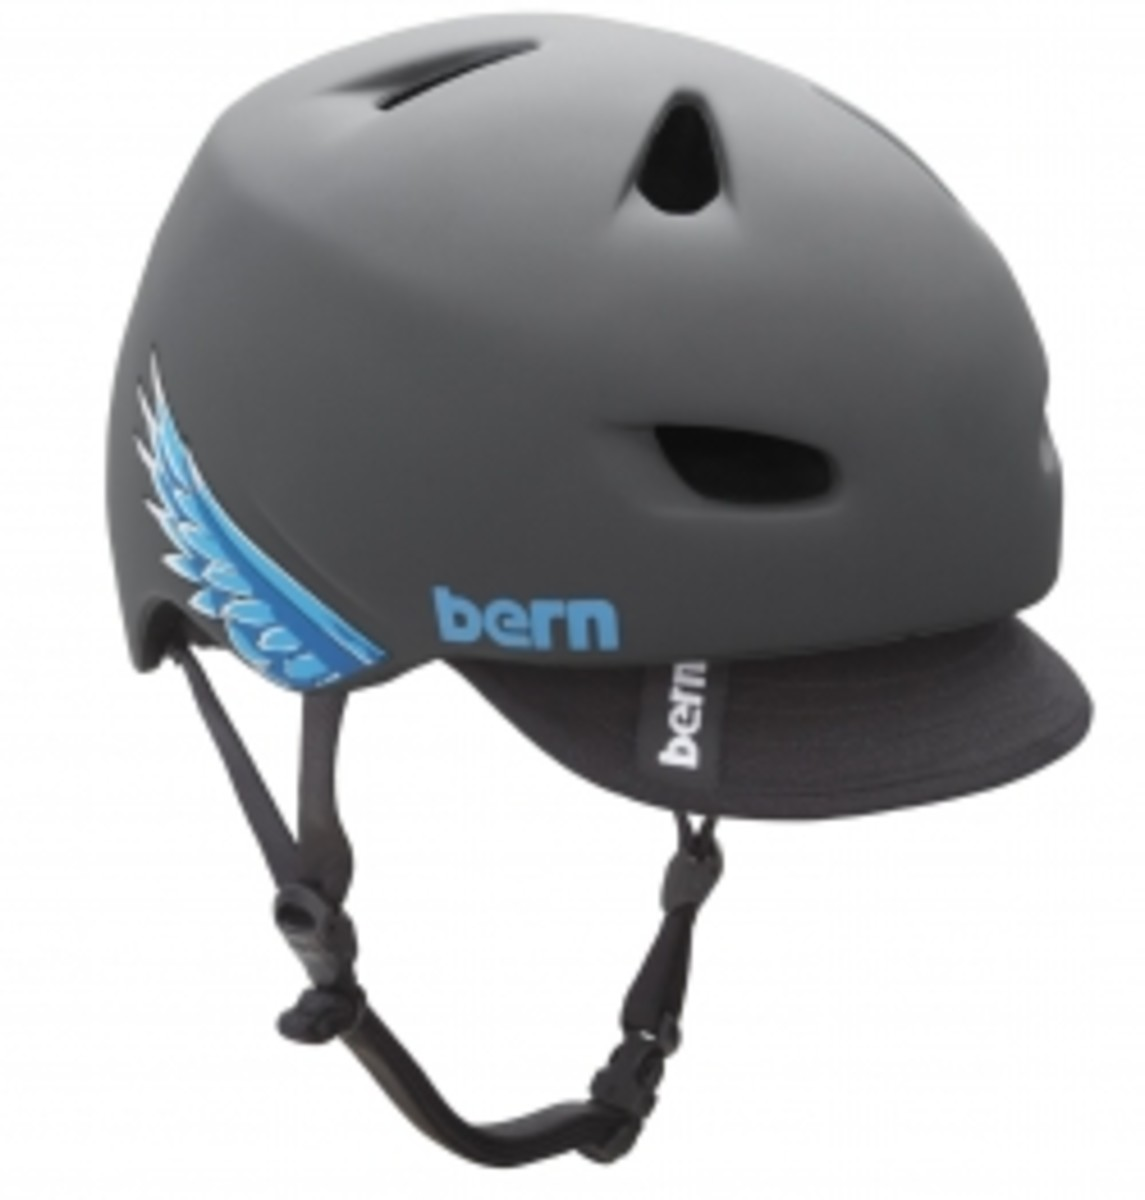 Bern bike helmets look like baseball caps